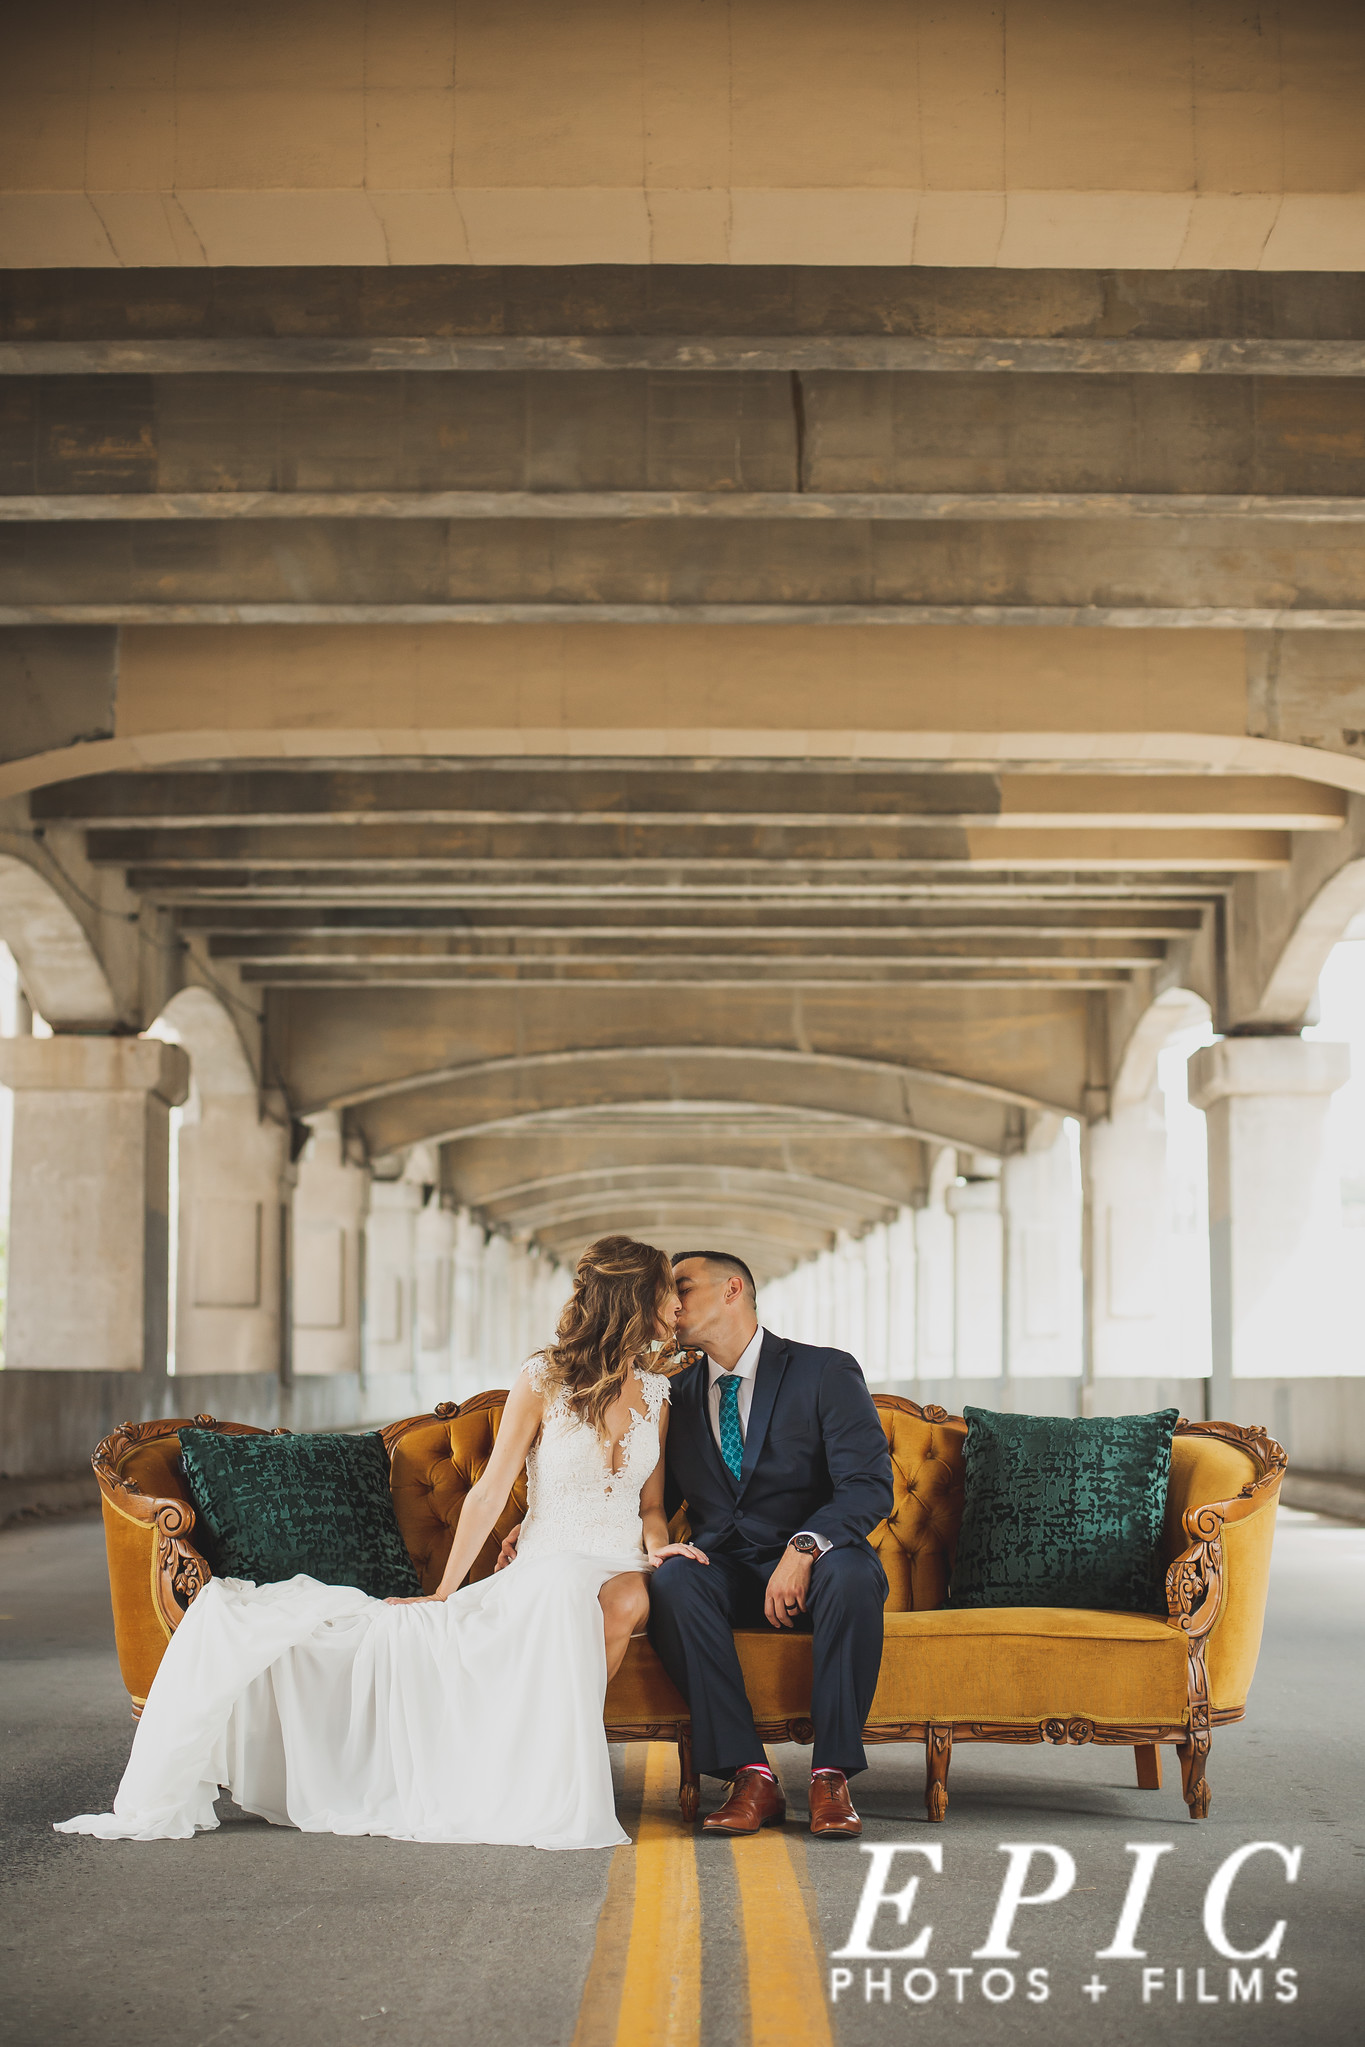 Bride and groom portrait on 12th street bridge in Kansas City, MO